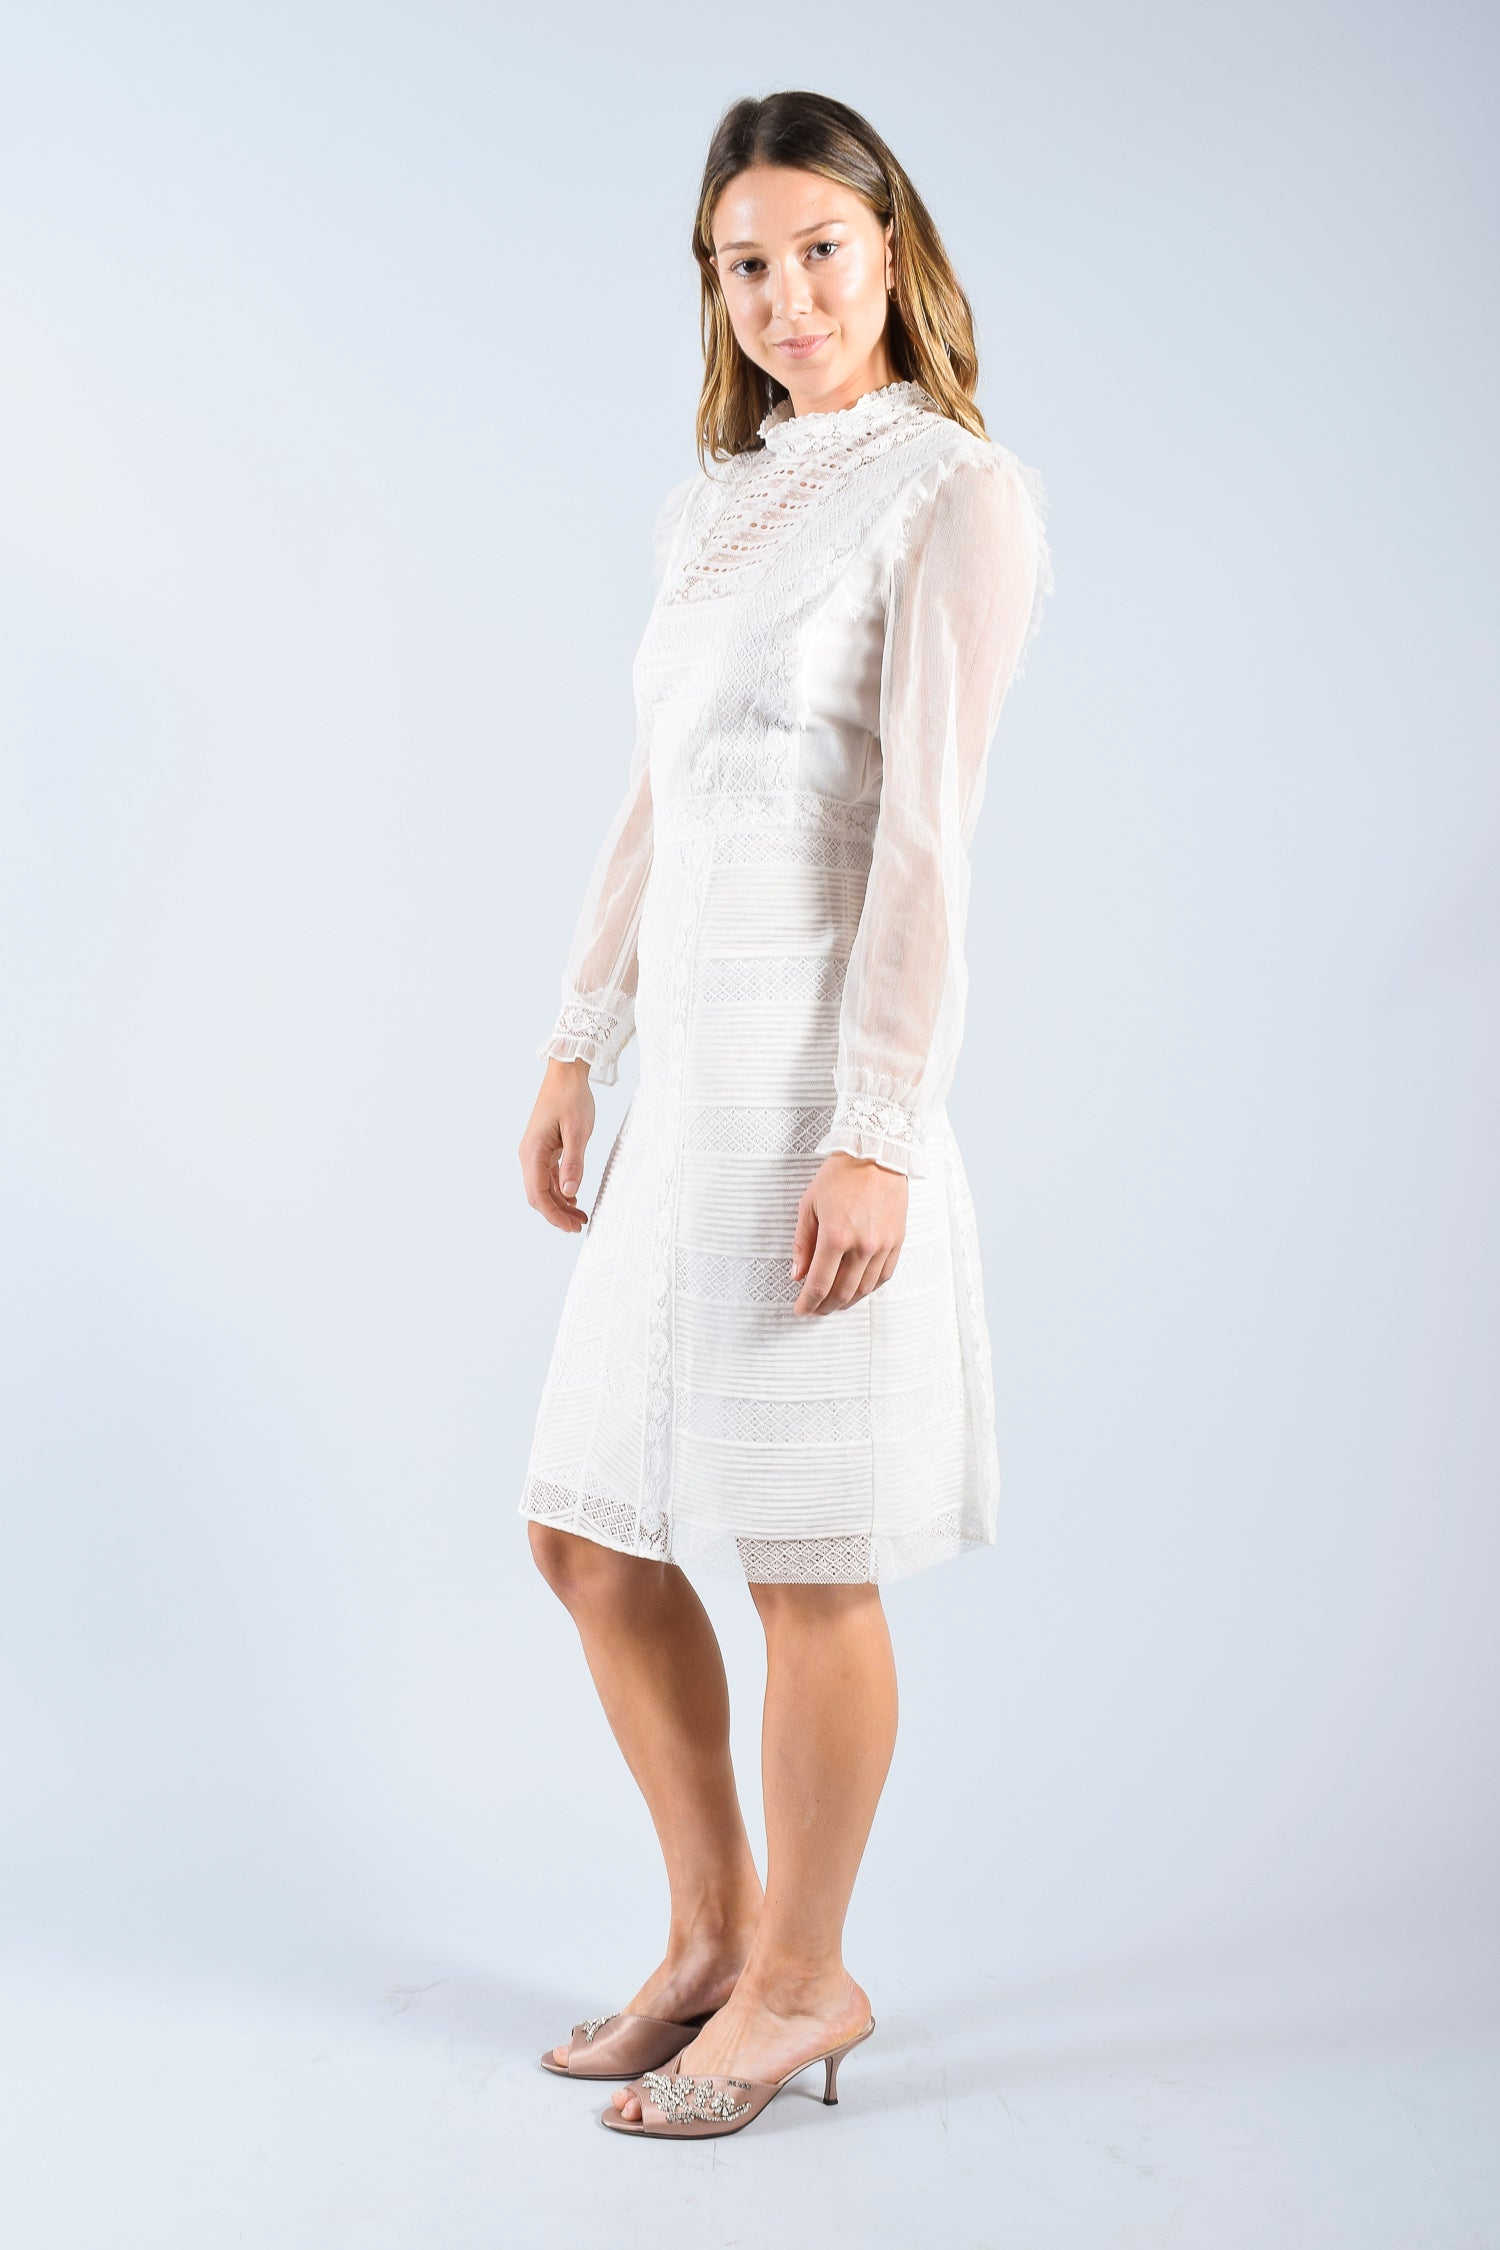 Burberry White Lace Long Sleeve Dress Size 8